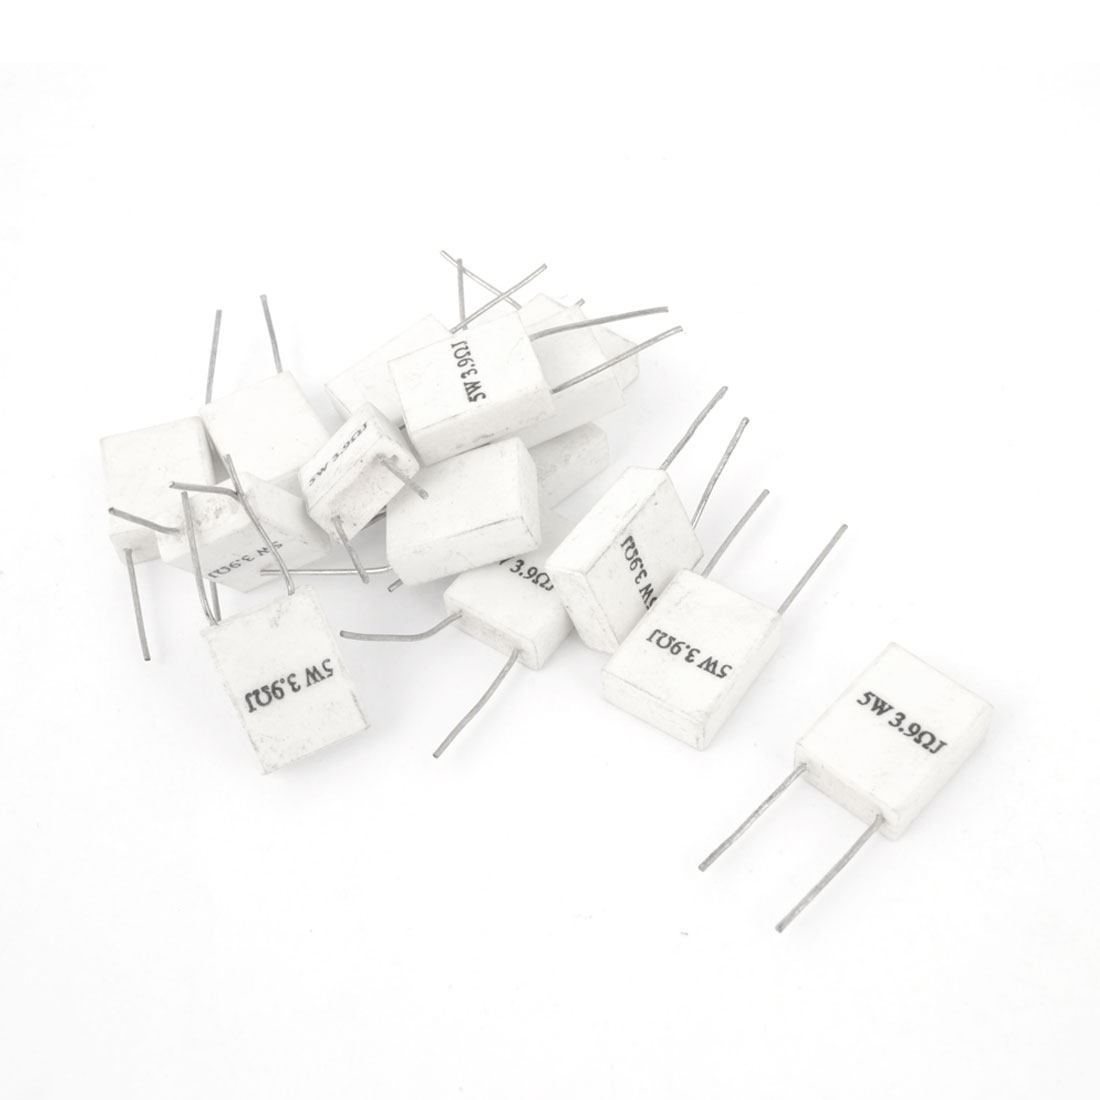 15 PCS 3.9 Ohm 5 Watt Wirewound Radial Ceramic Cement Resistors